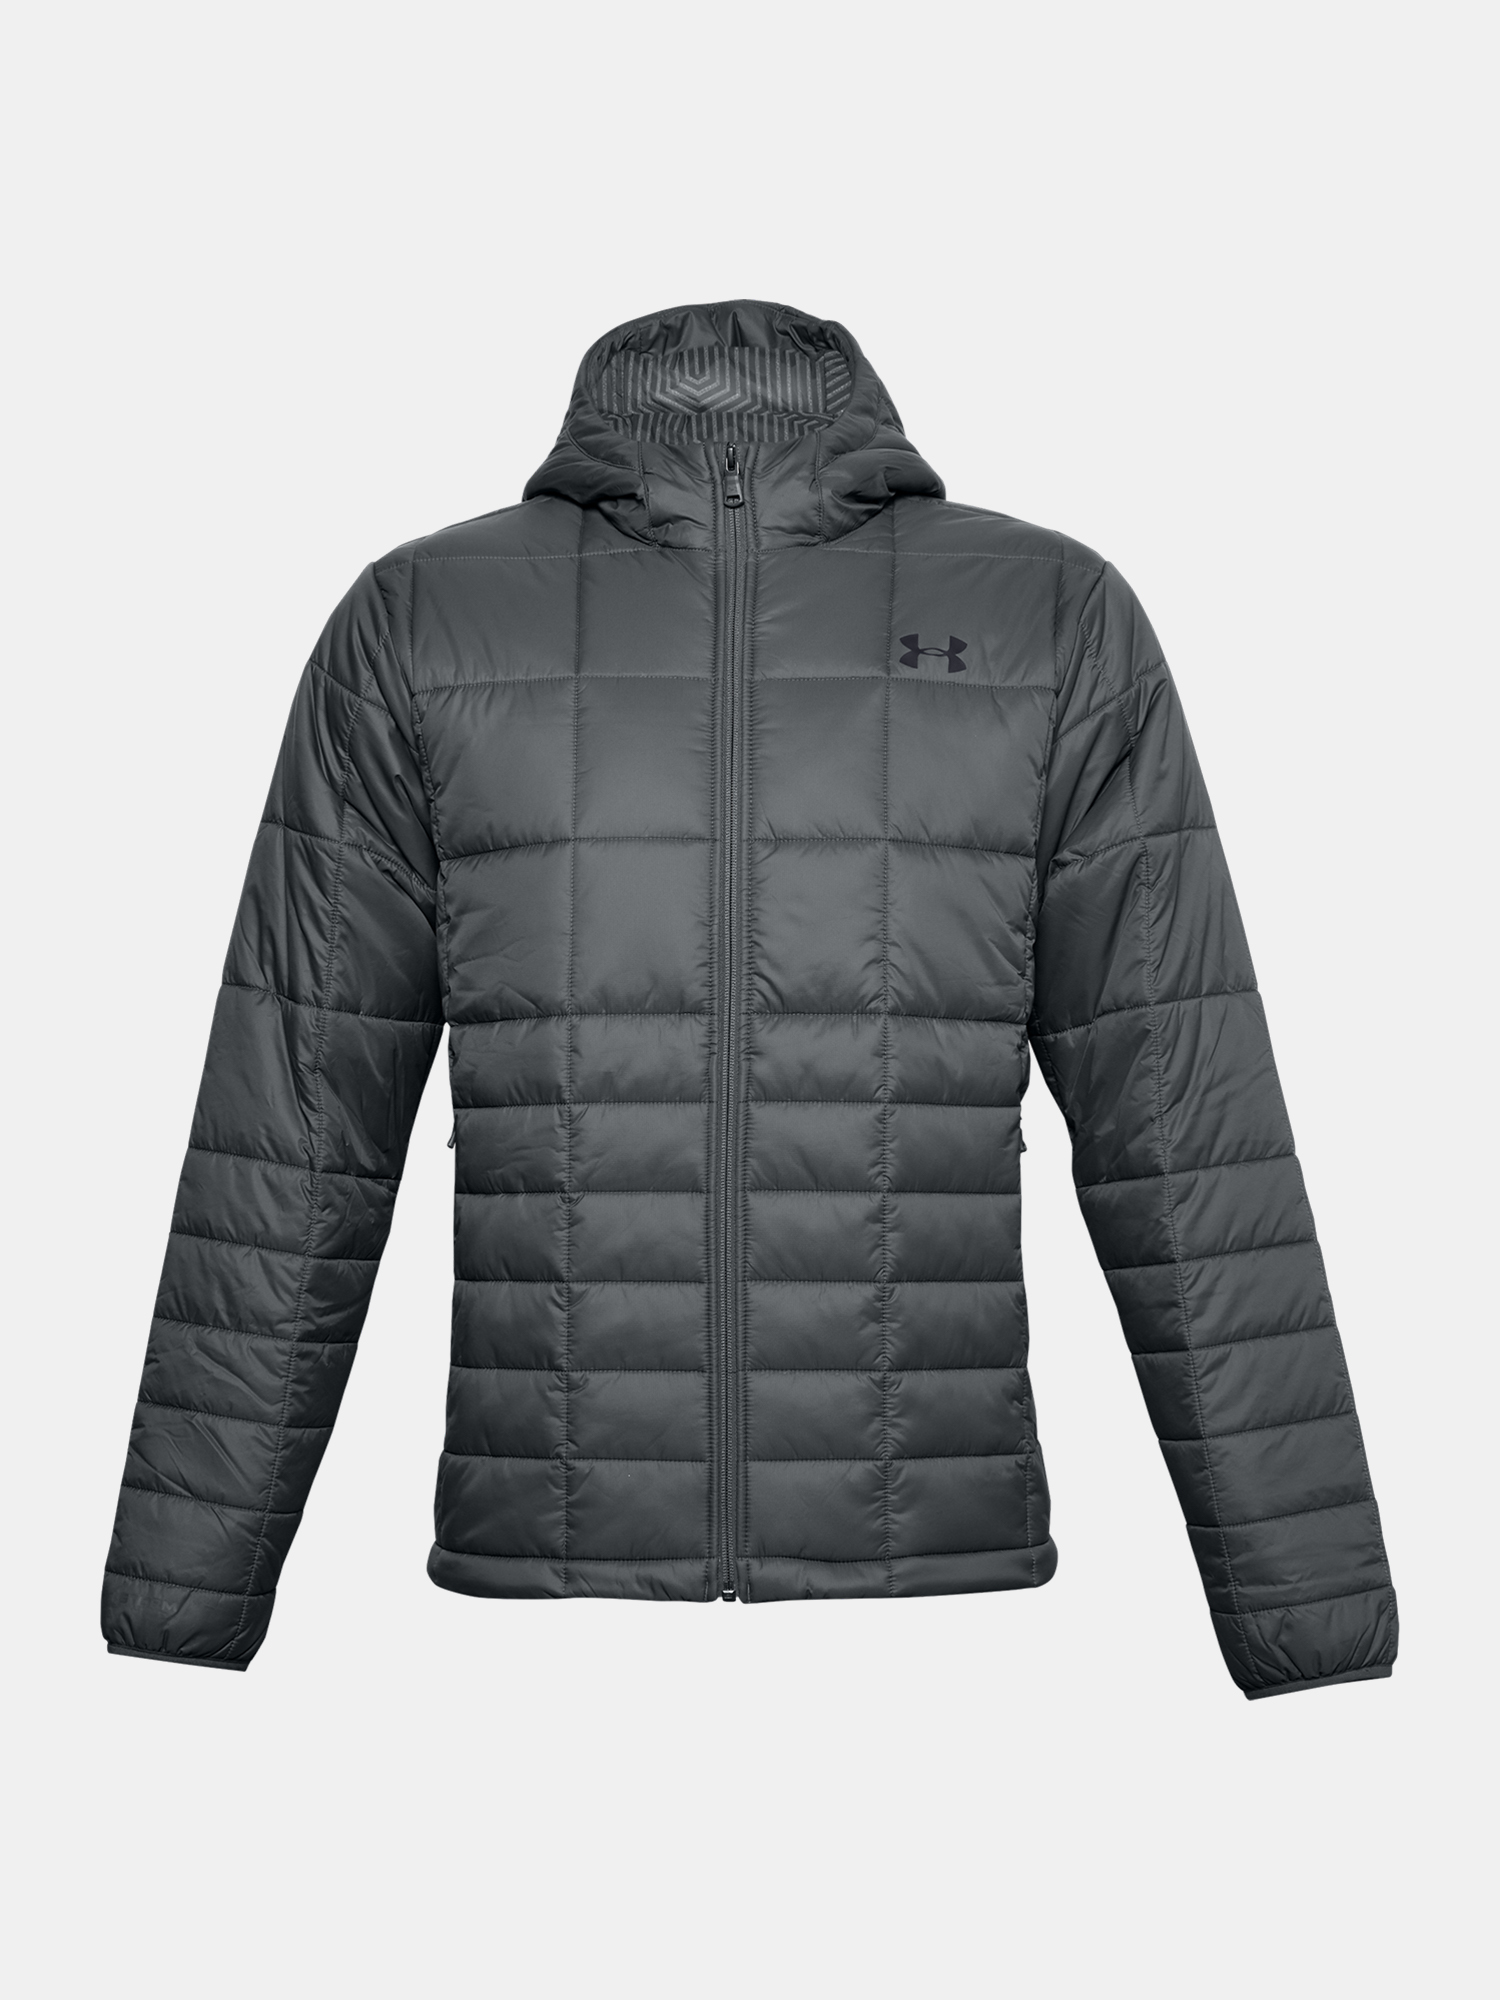 Bunda Under Armour UA Armour Insulated Hooded Jkt-GRY (3)